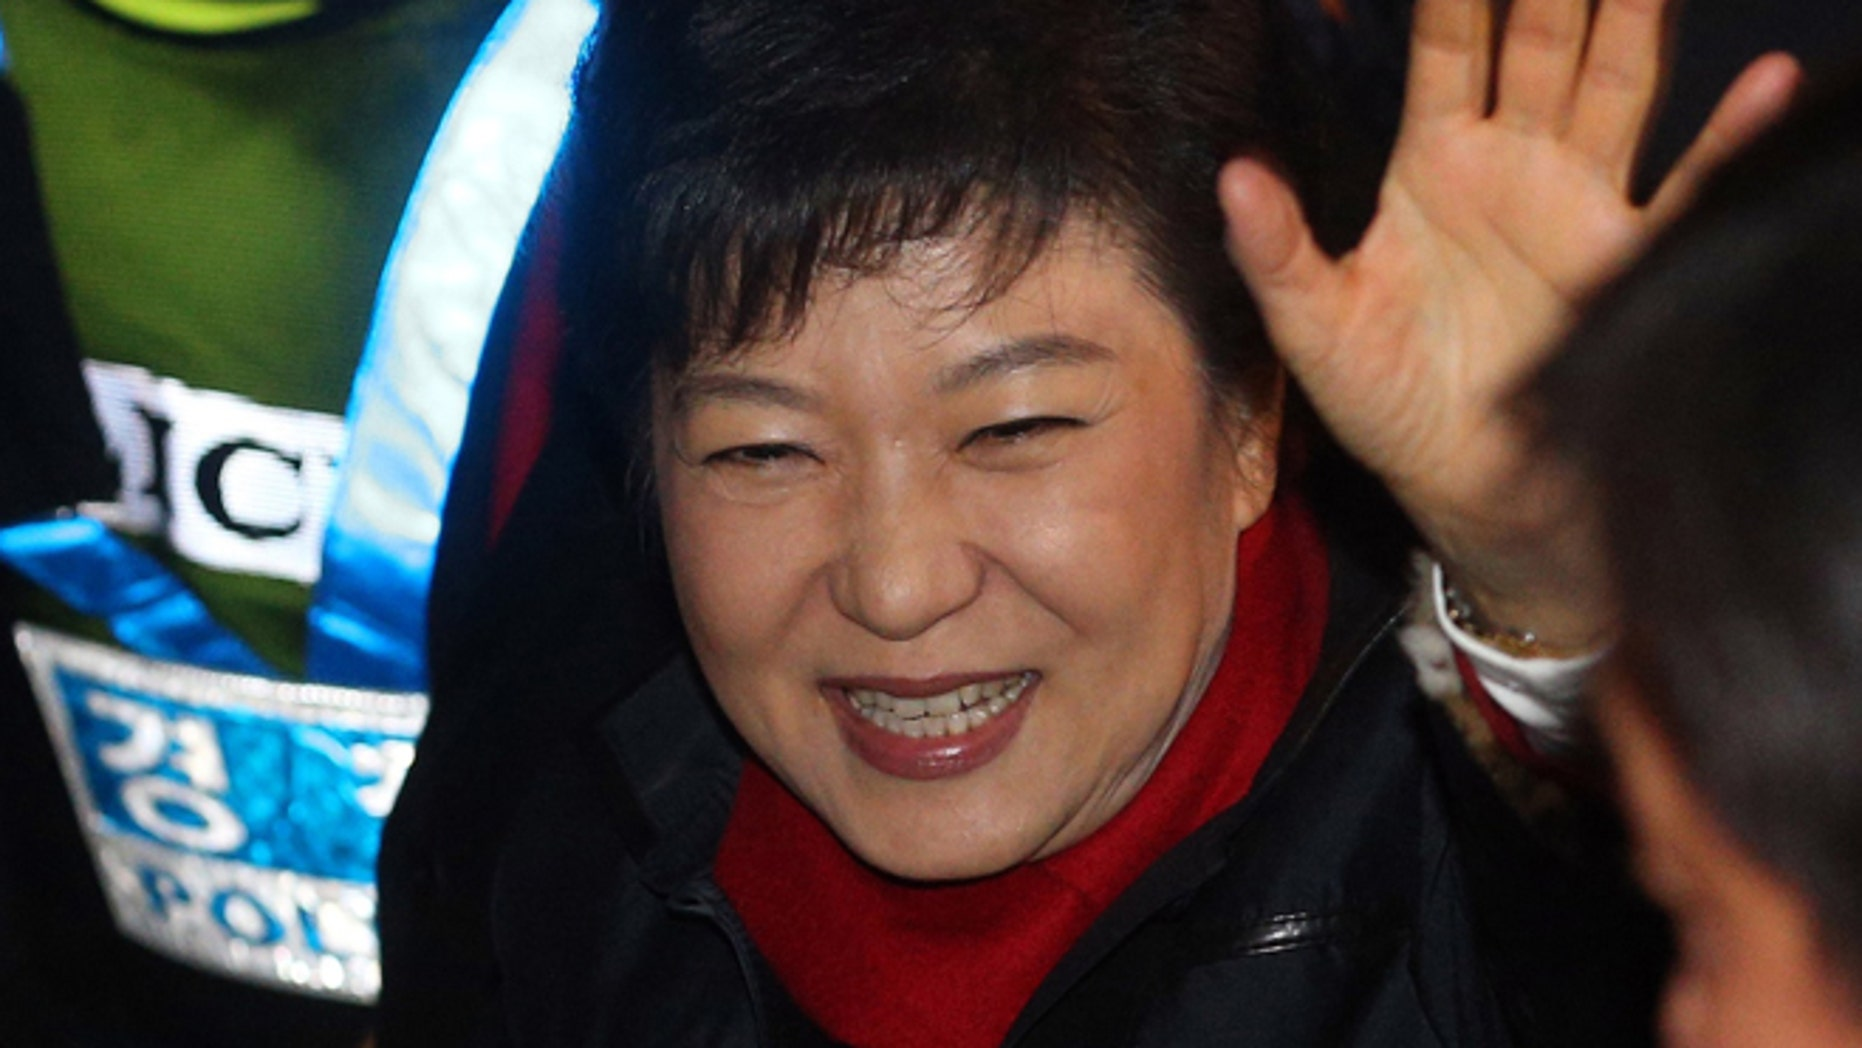 Dec. 19, 2012: South Korea's presidential candidate Park Geun-hye of the ruling Saenuri Party waves to supporters as she heads to her office from her house in Seoul, South Korea.